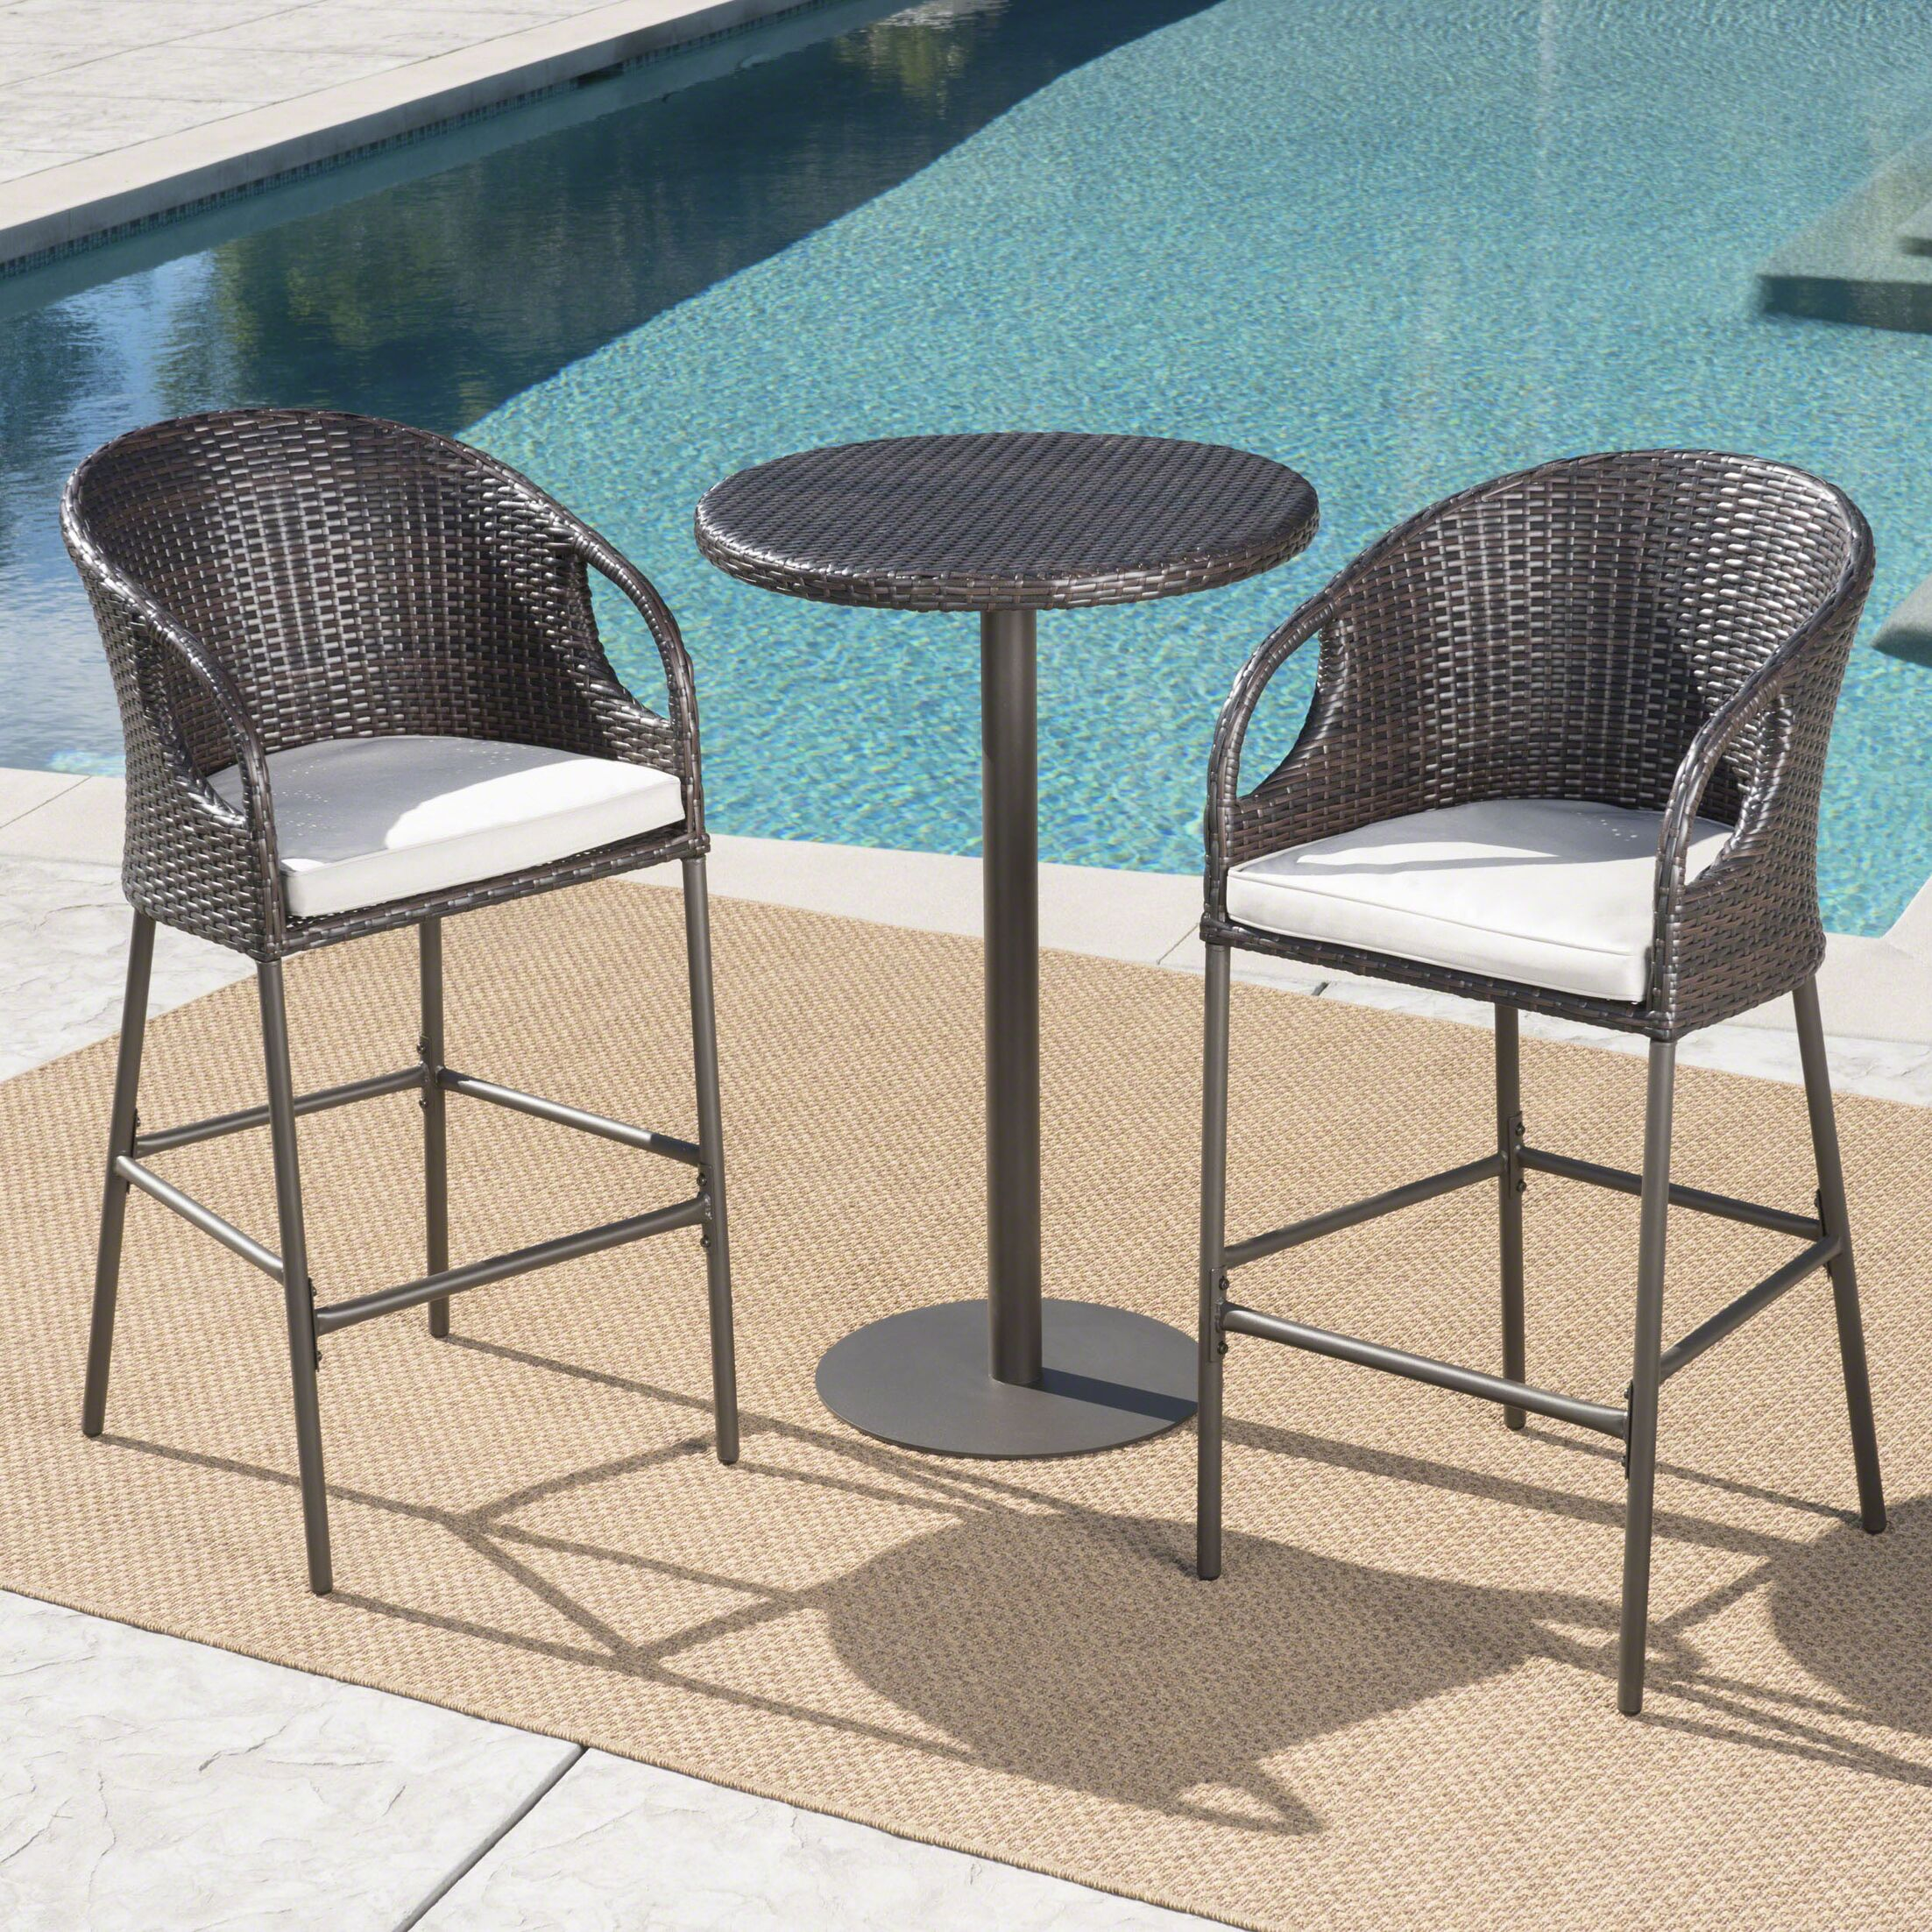 Cordelia 3 Piece Bar Height Dining Set with Cushions